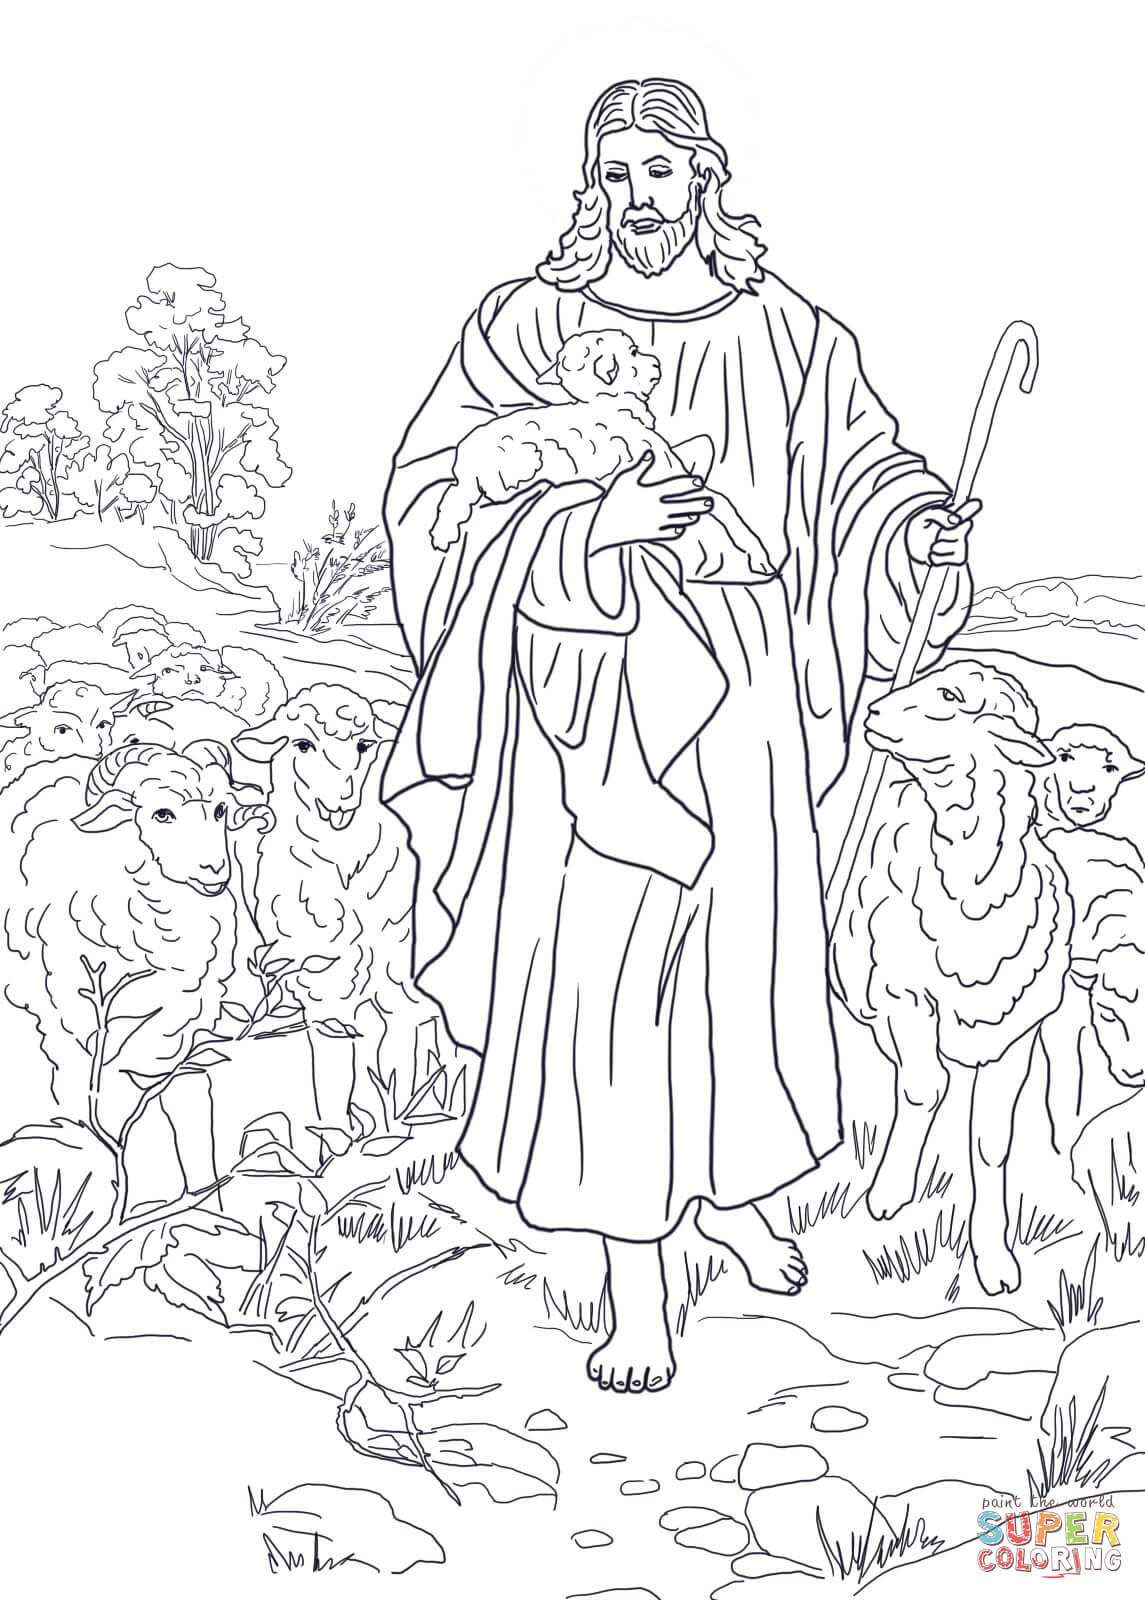 Jesus is the Good Shepherd coloring page | Free Printable Coloring ...